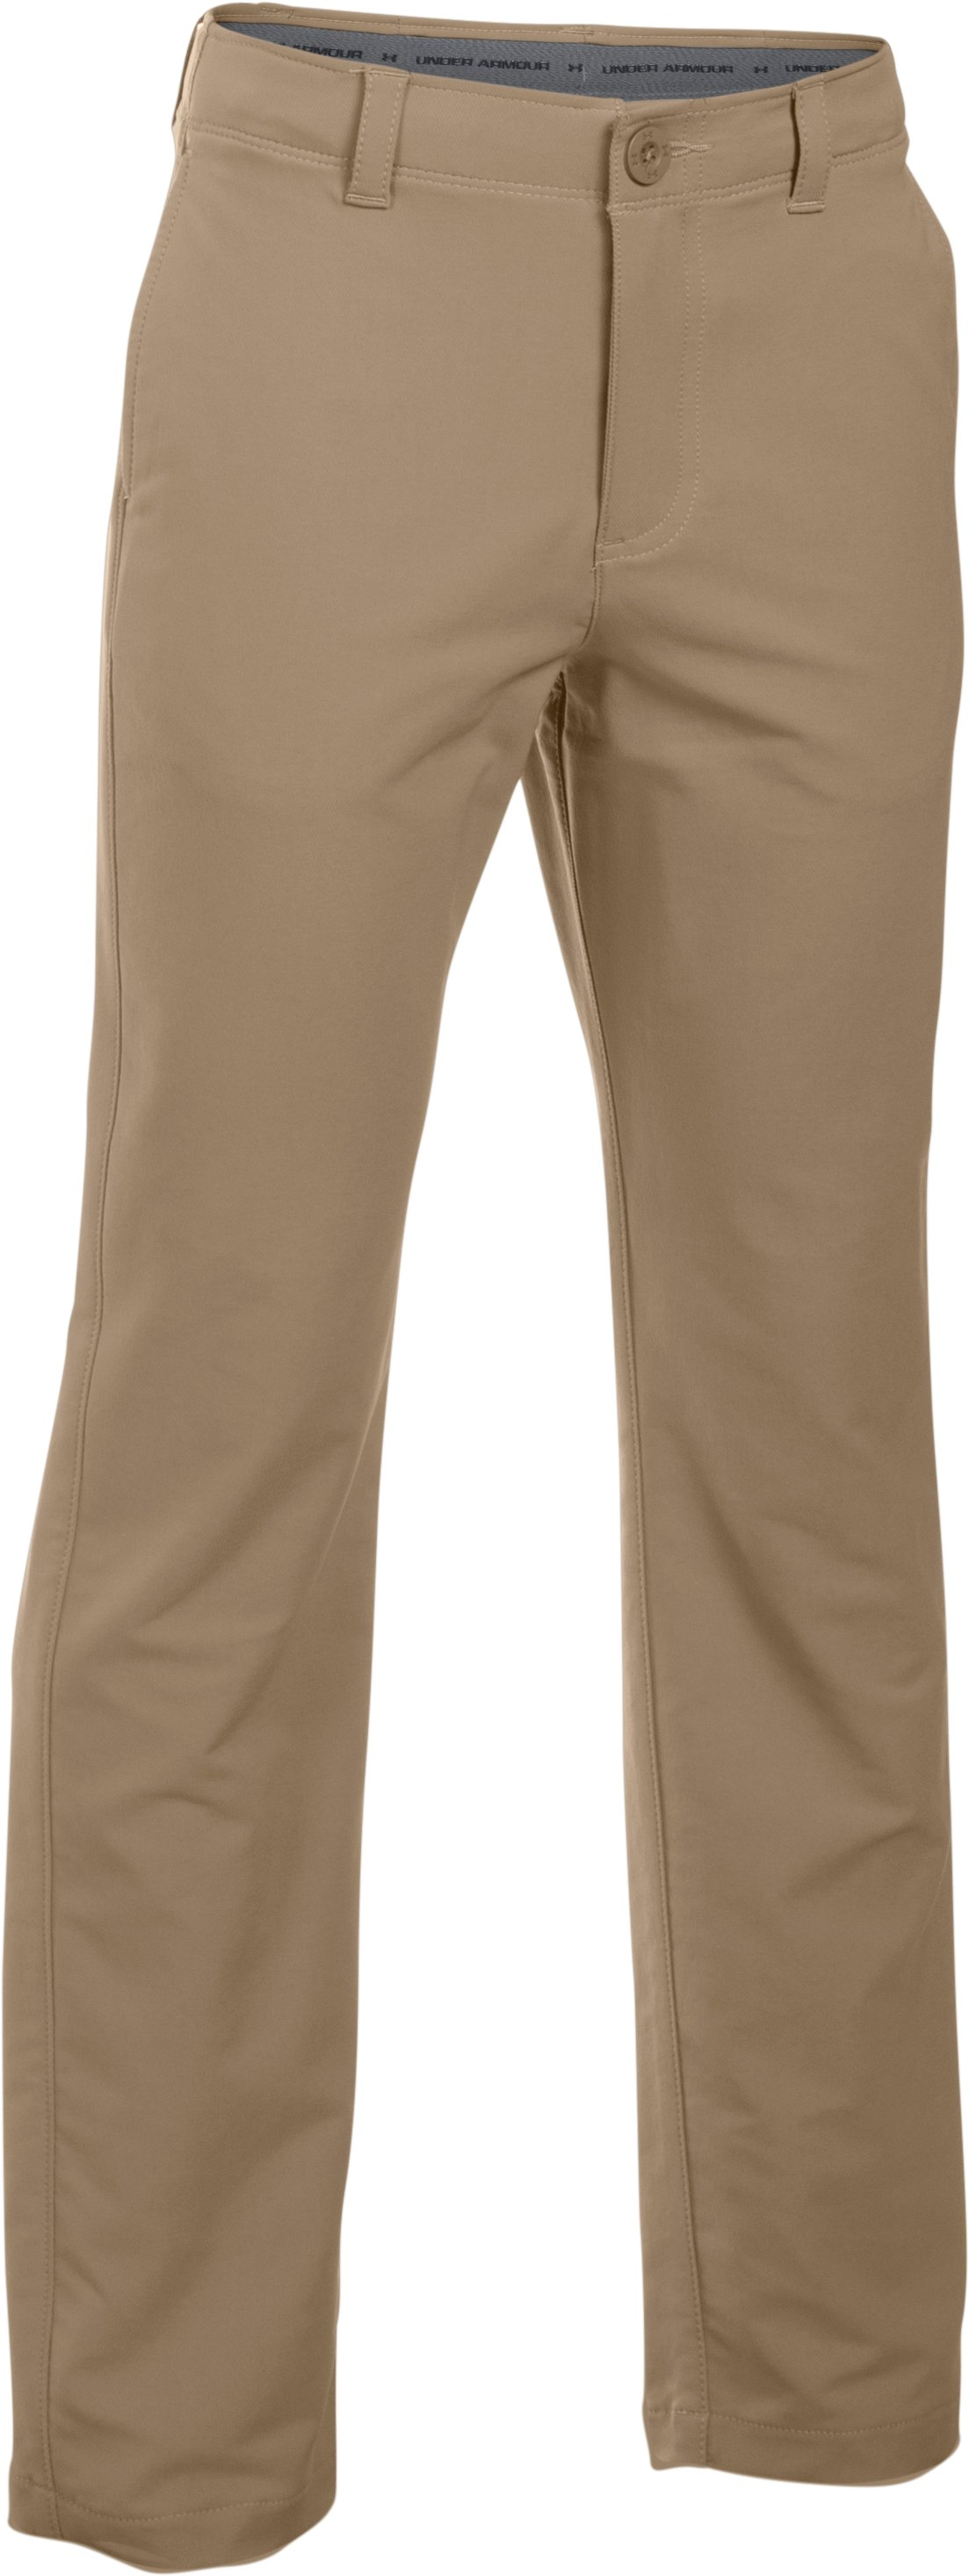 Boys' UA Match Play Pants, Canvas, zoomed image